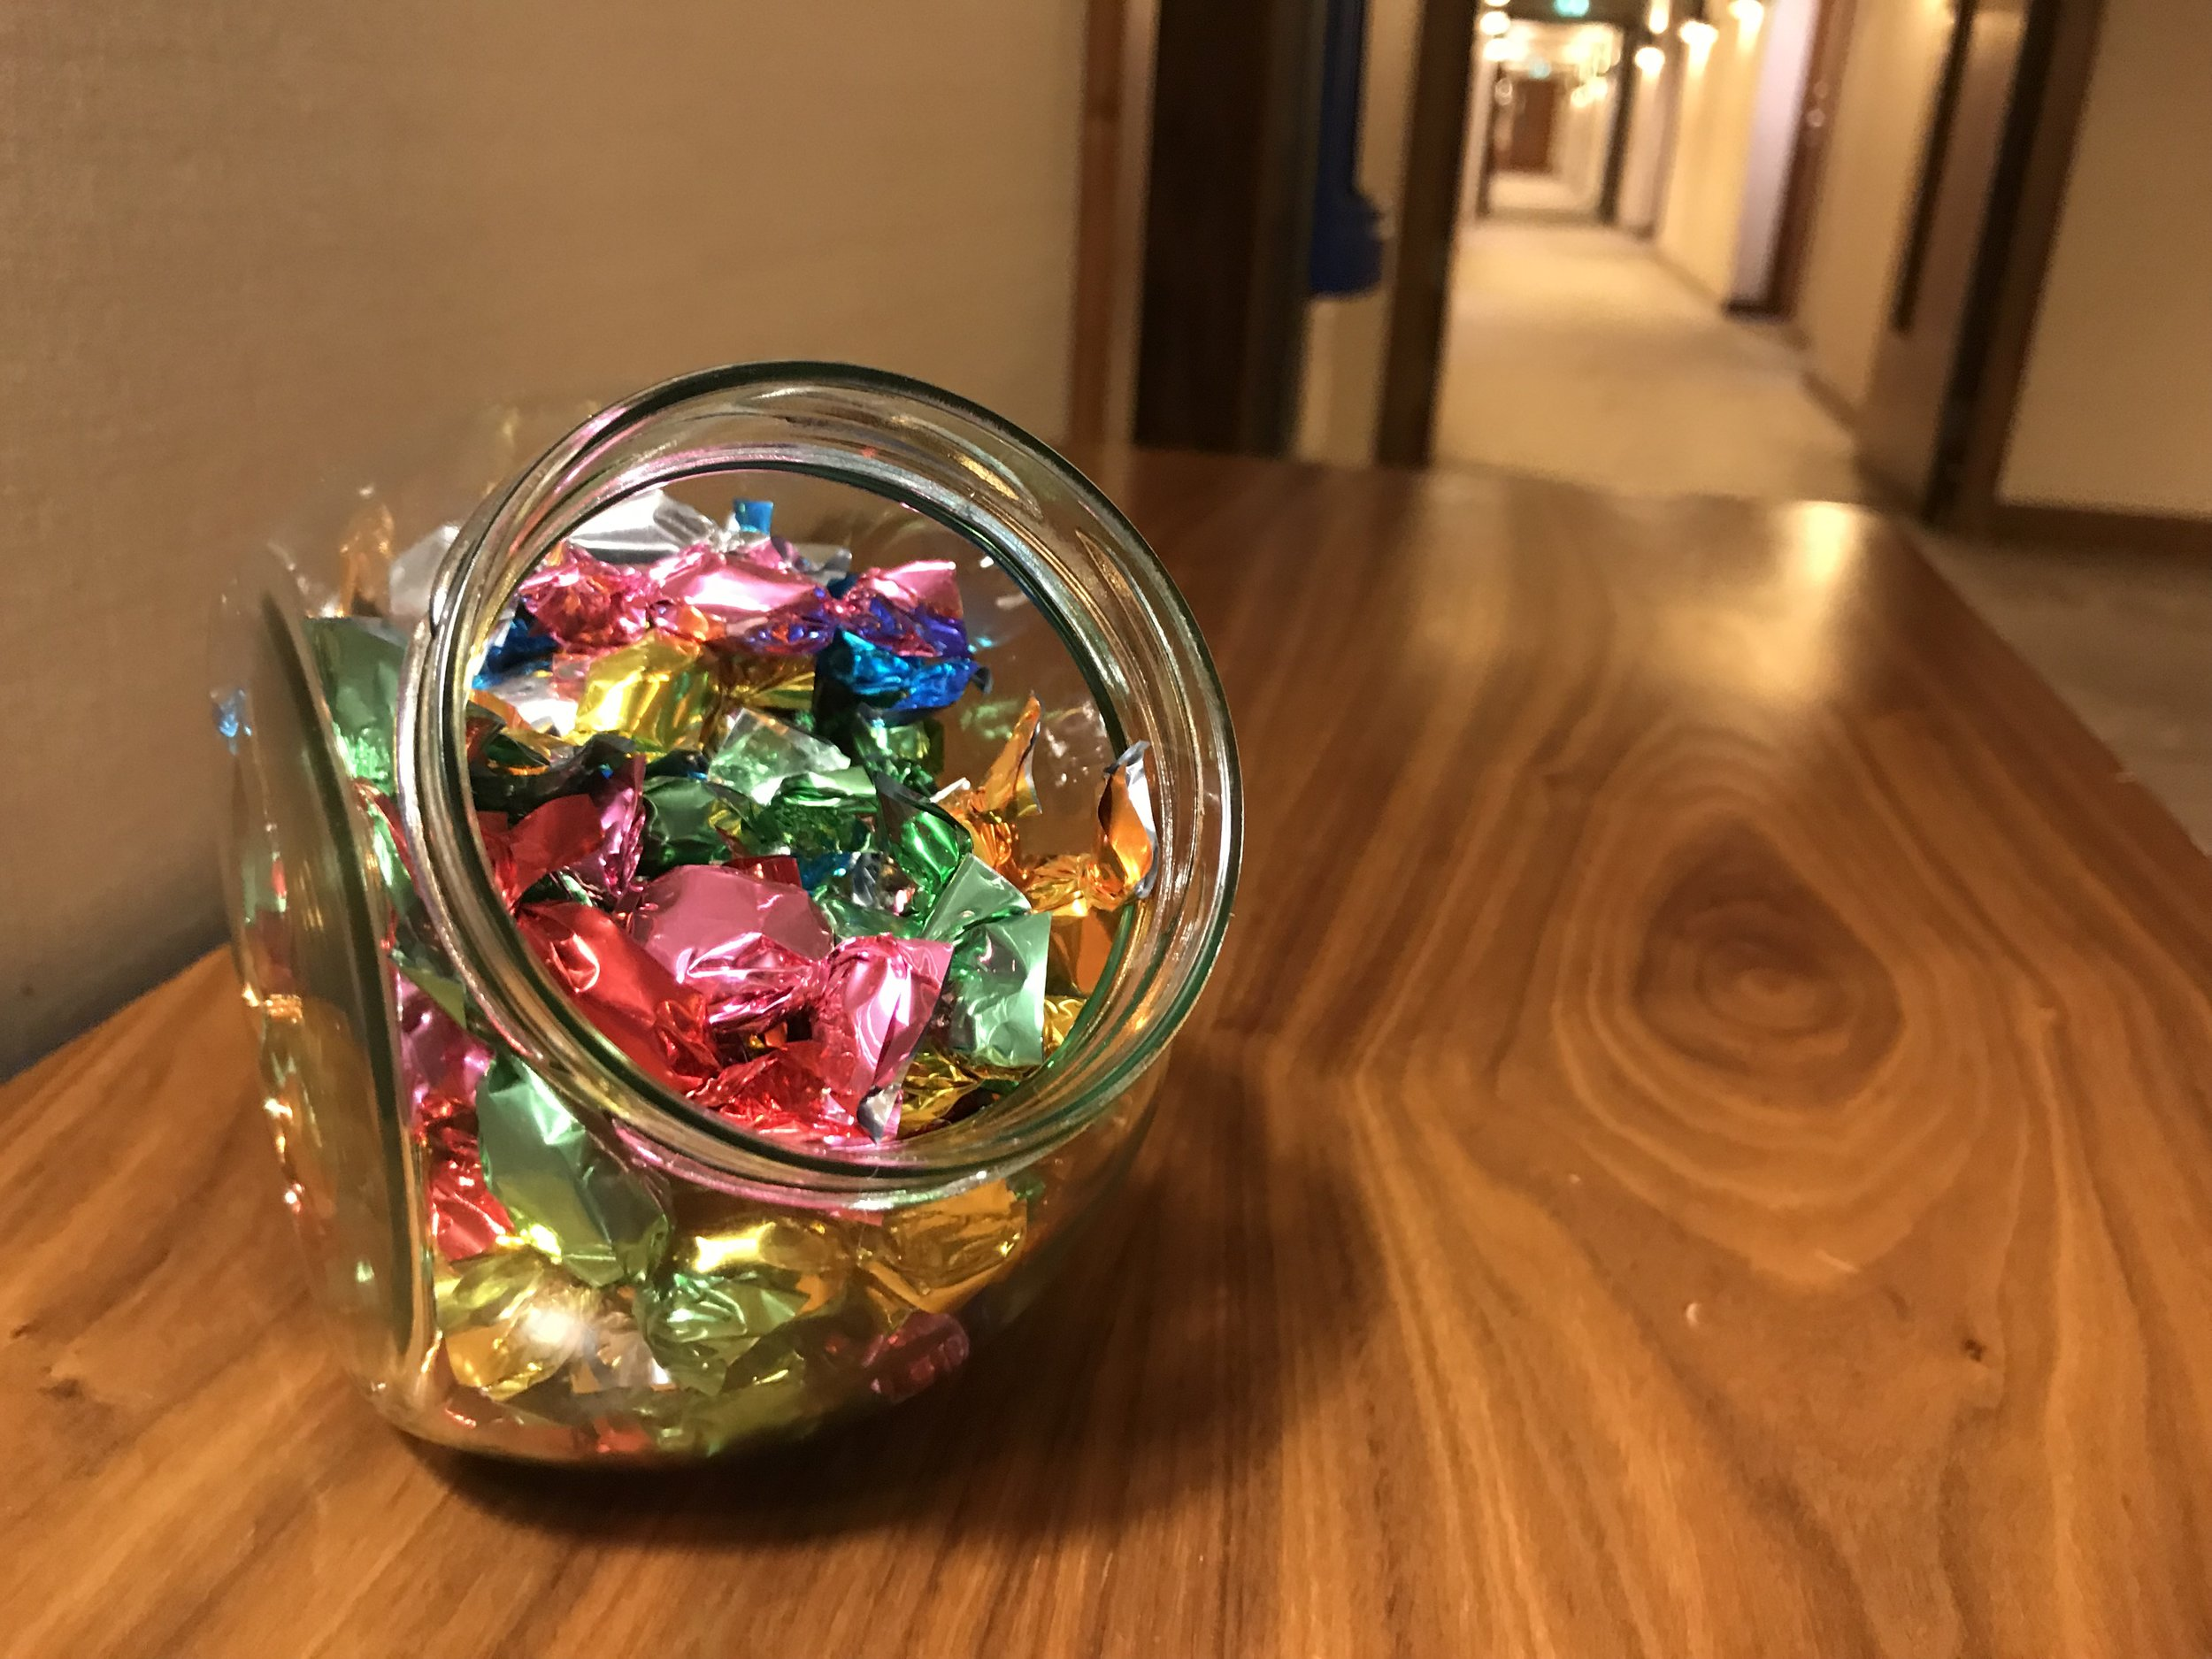 The little touches: the staff put out hard candy during the day for guests to have.